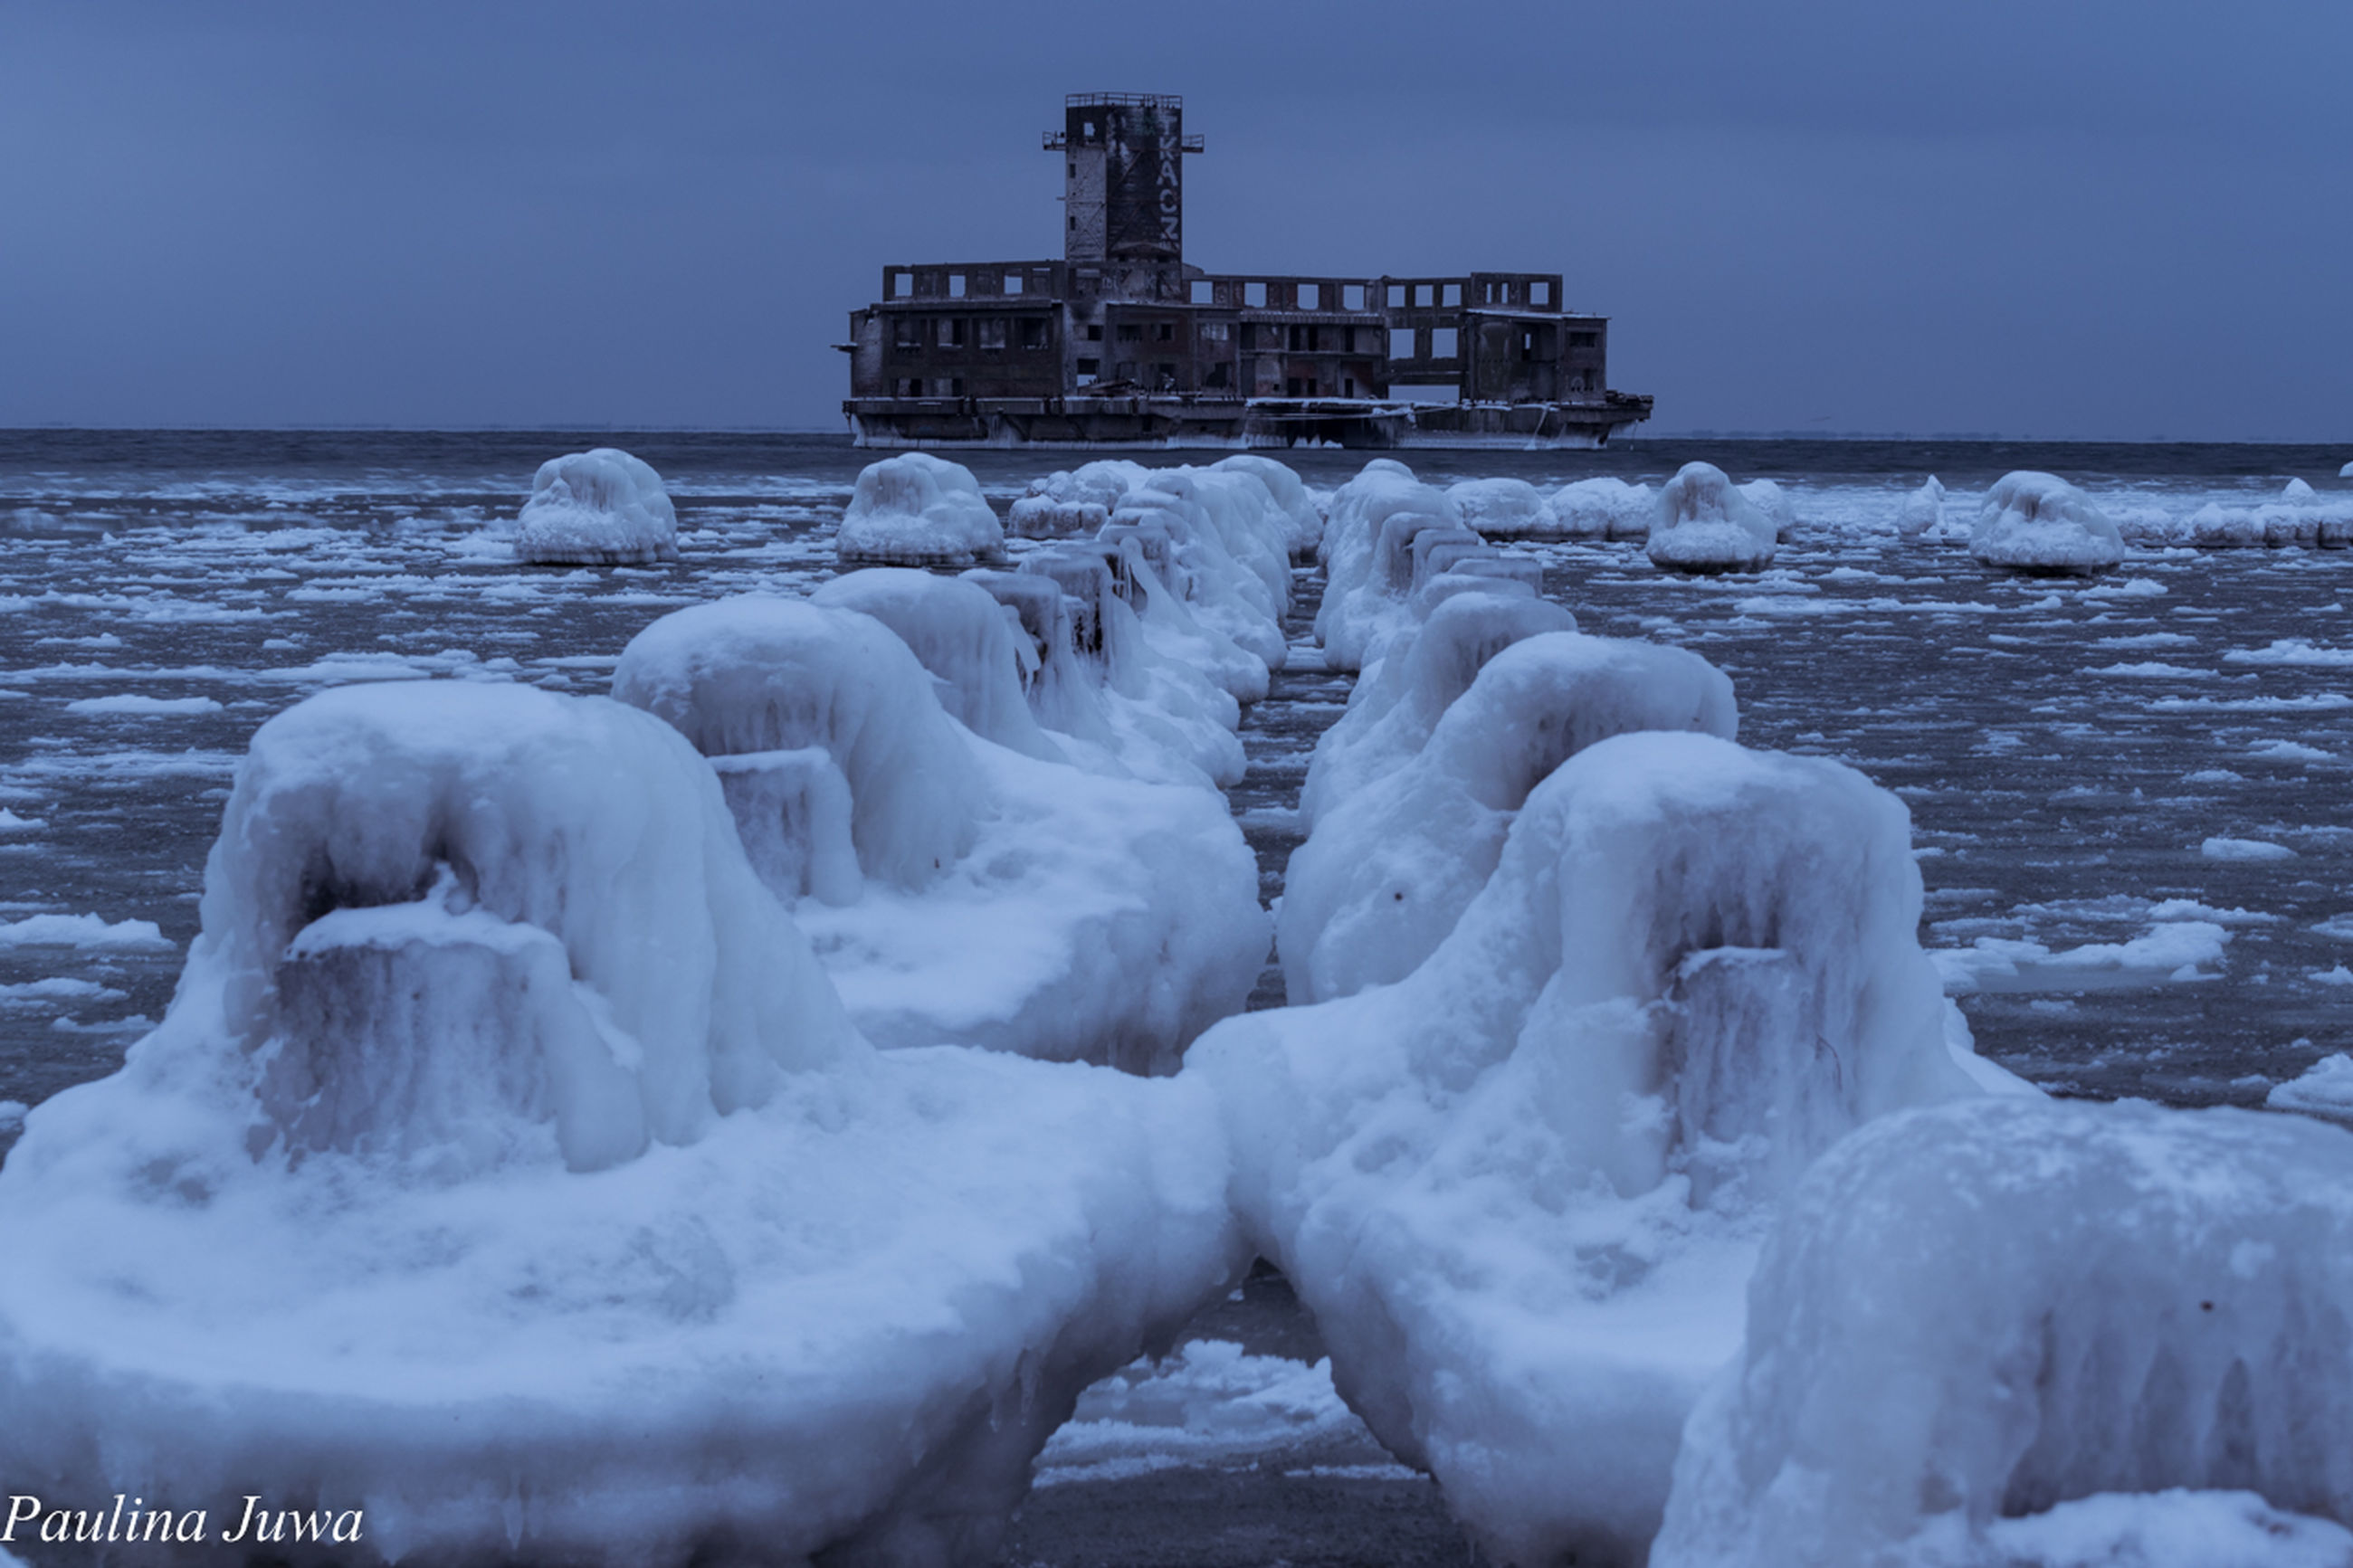 cold temperature, winter, water, sea, frozen, ice, weather, nature, snow, beauty in nature, outdoors, scenics, tranquility, sky, architecture, no people, travel destinations, built structure, day, building exterior, wave, horizon over water, iceberg